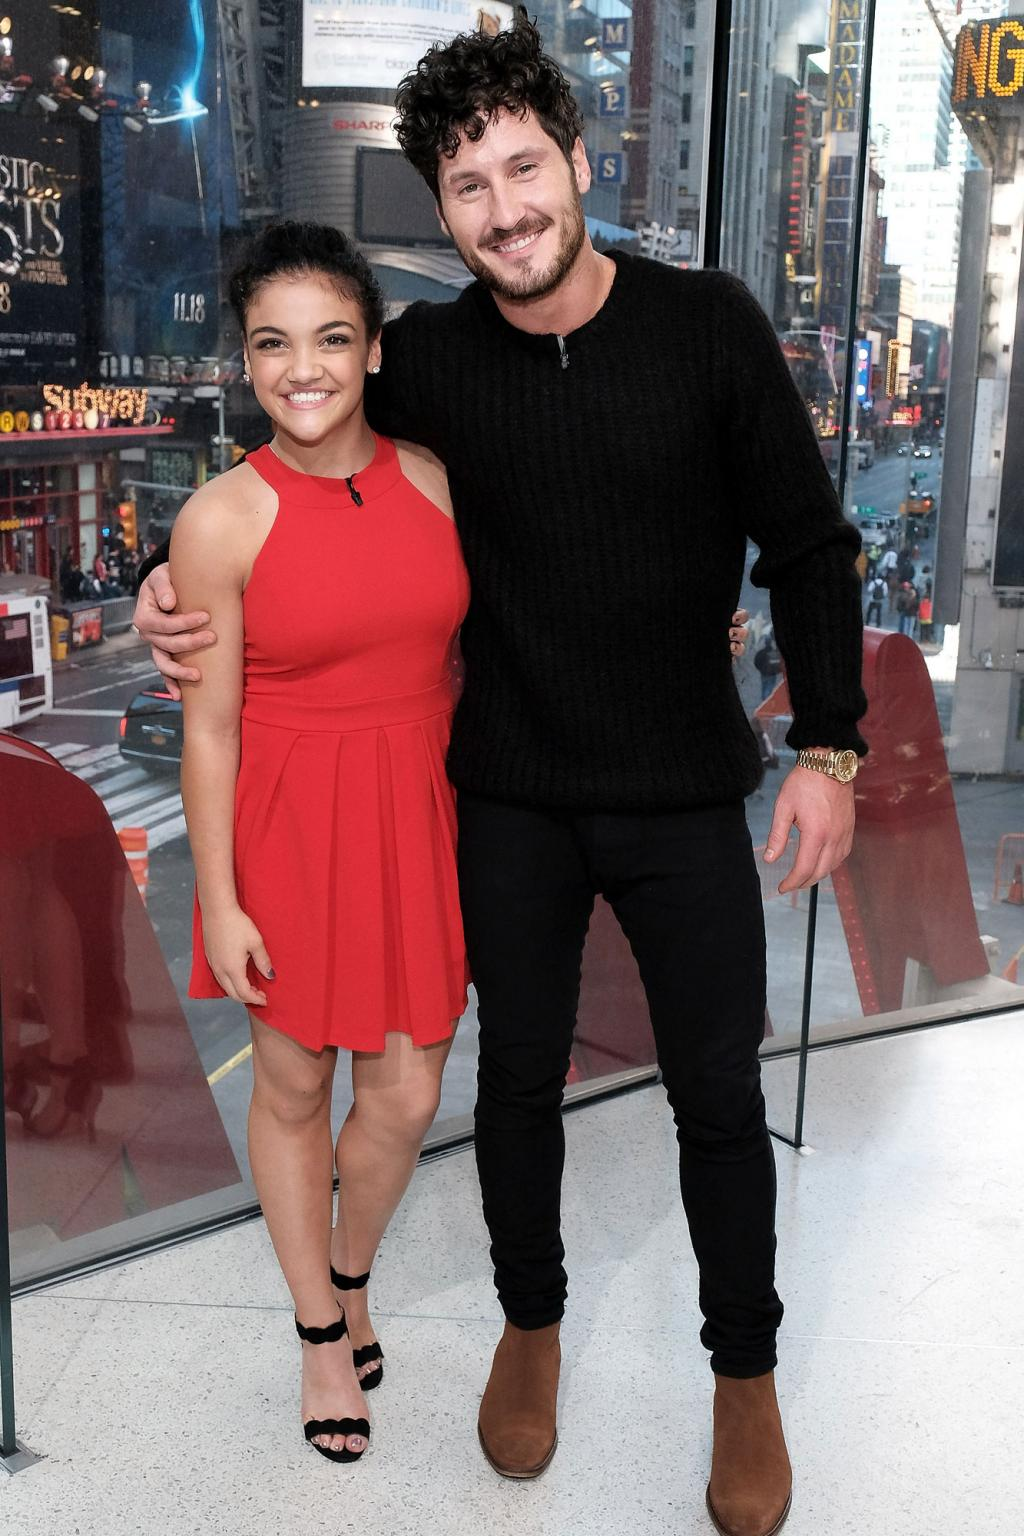 Find Out How Laurie Hernandez Celebrated Her Dancing with the Stars Win (Hint: It's Tasty and Cold!)